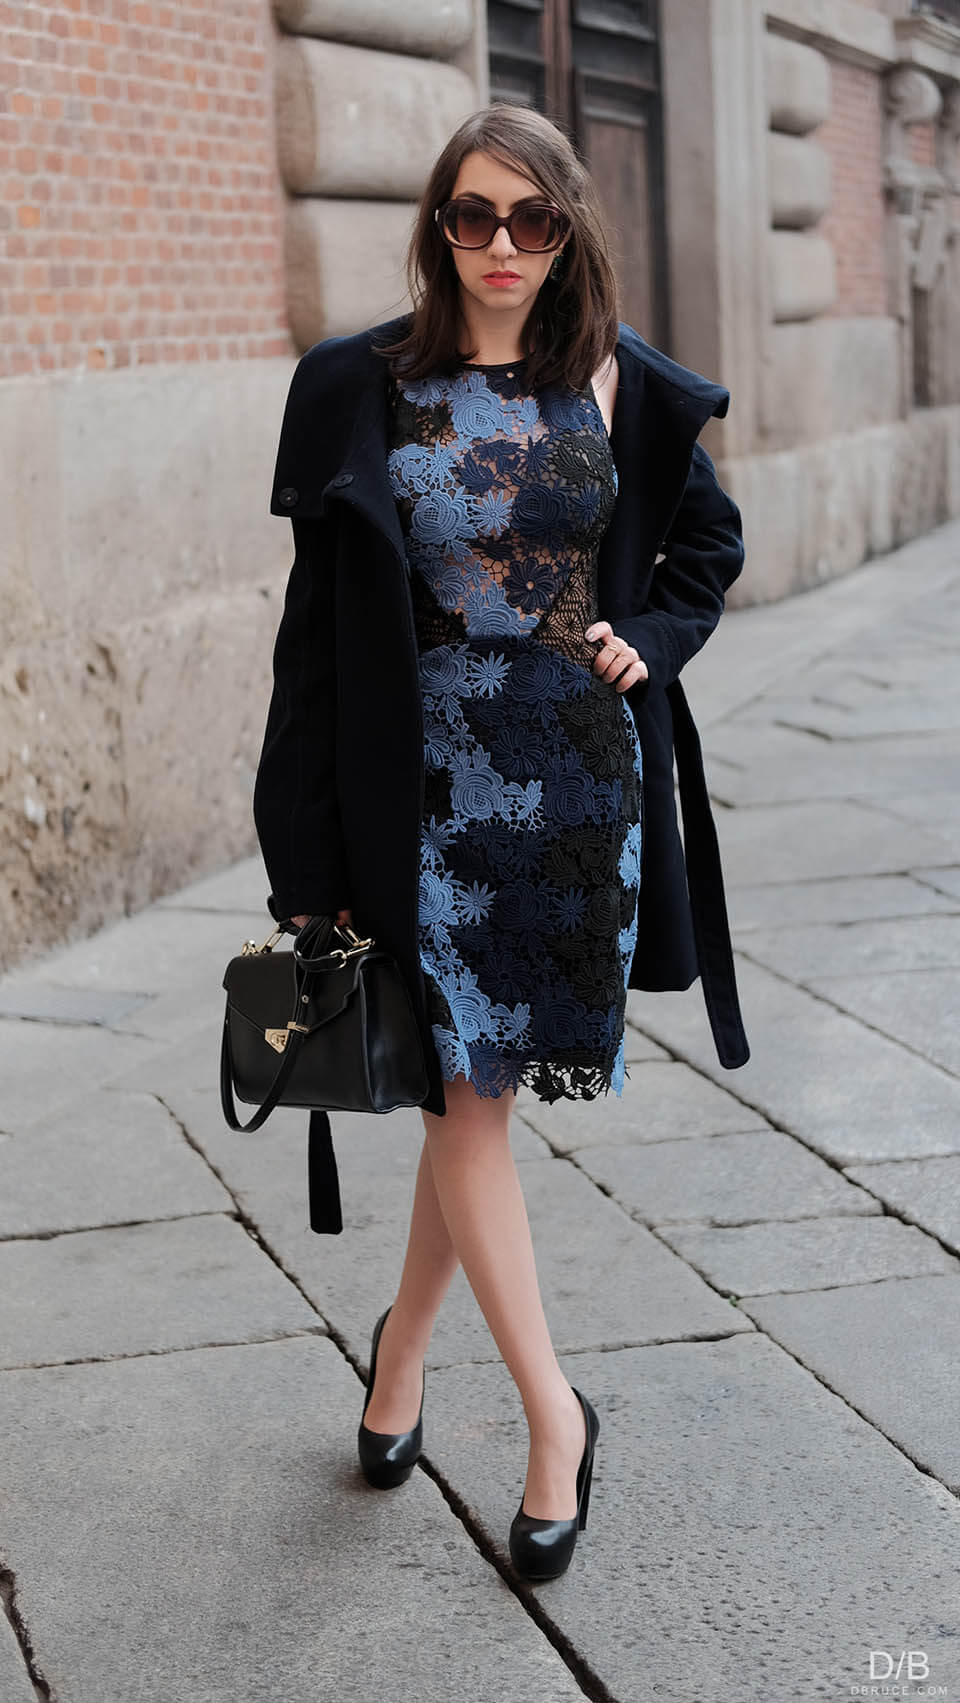 Manu Luize - floral dress and coat